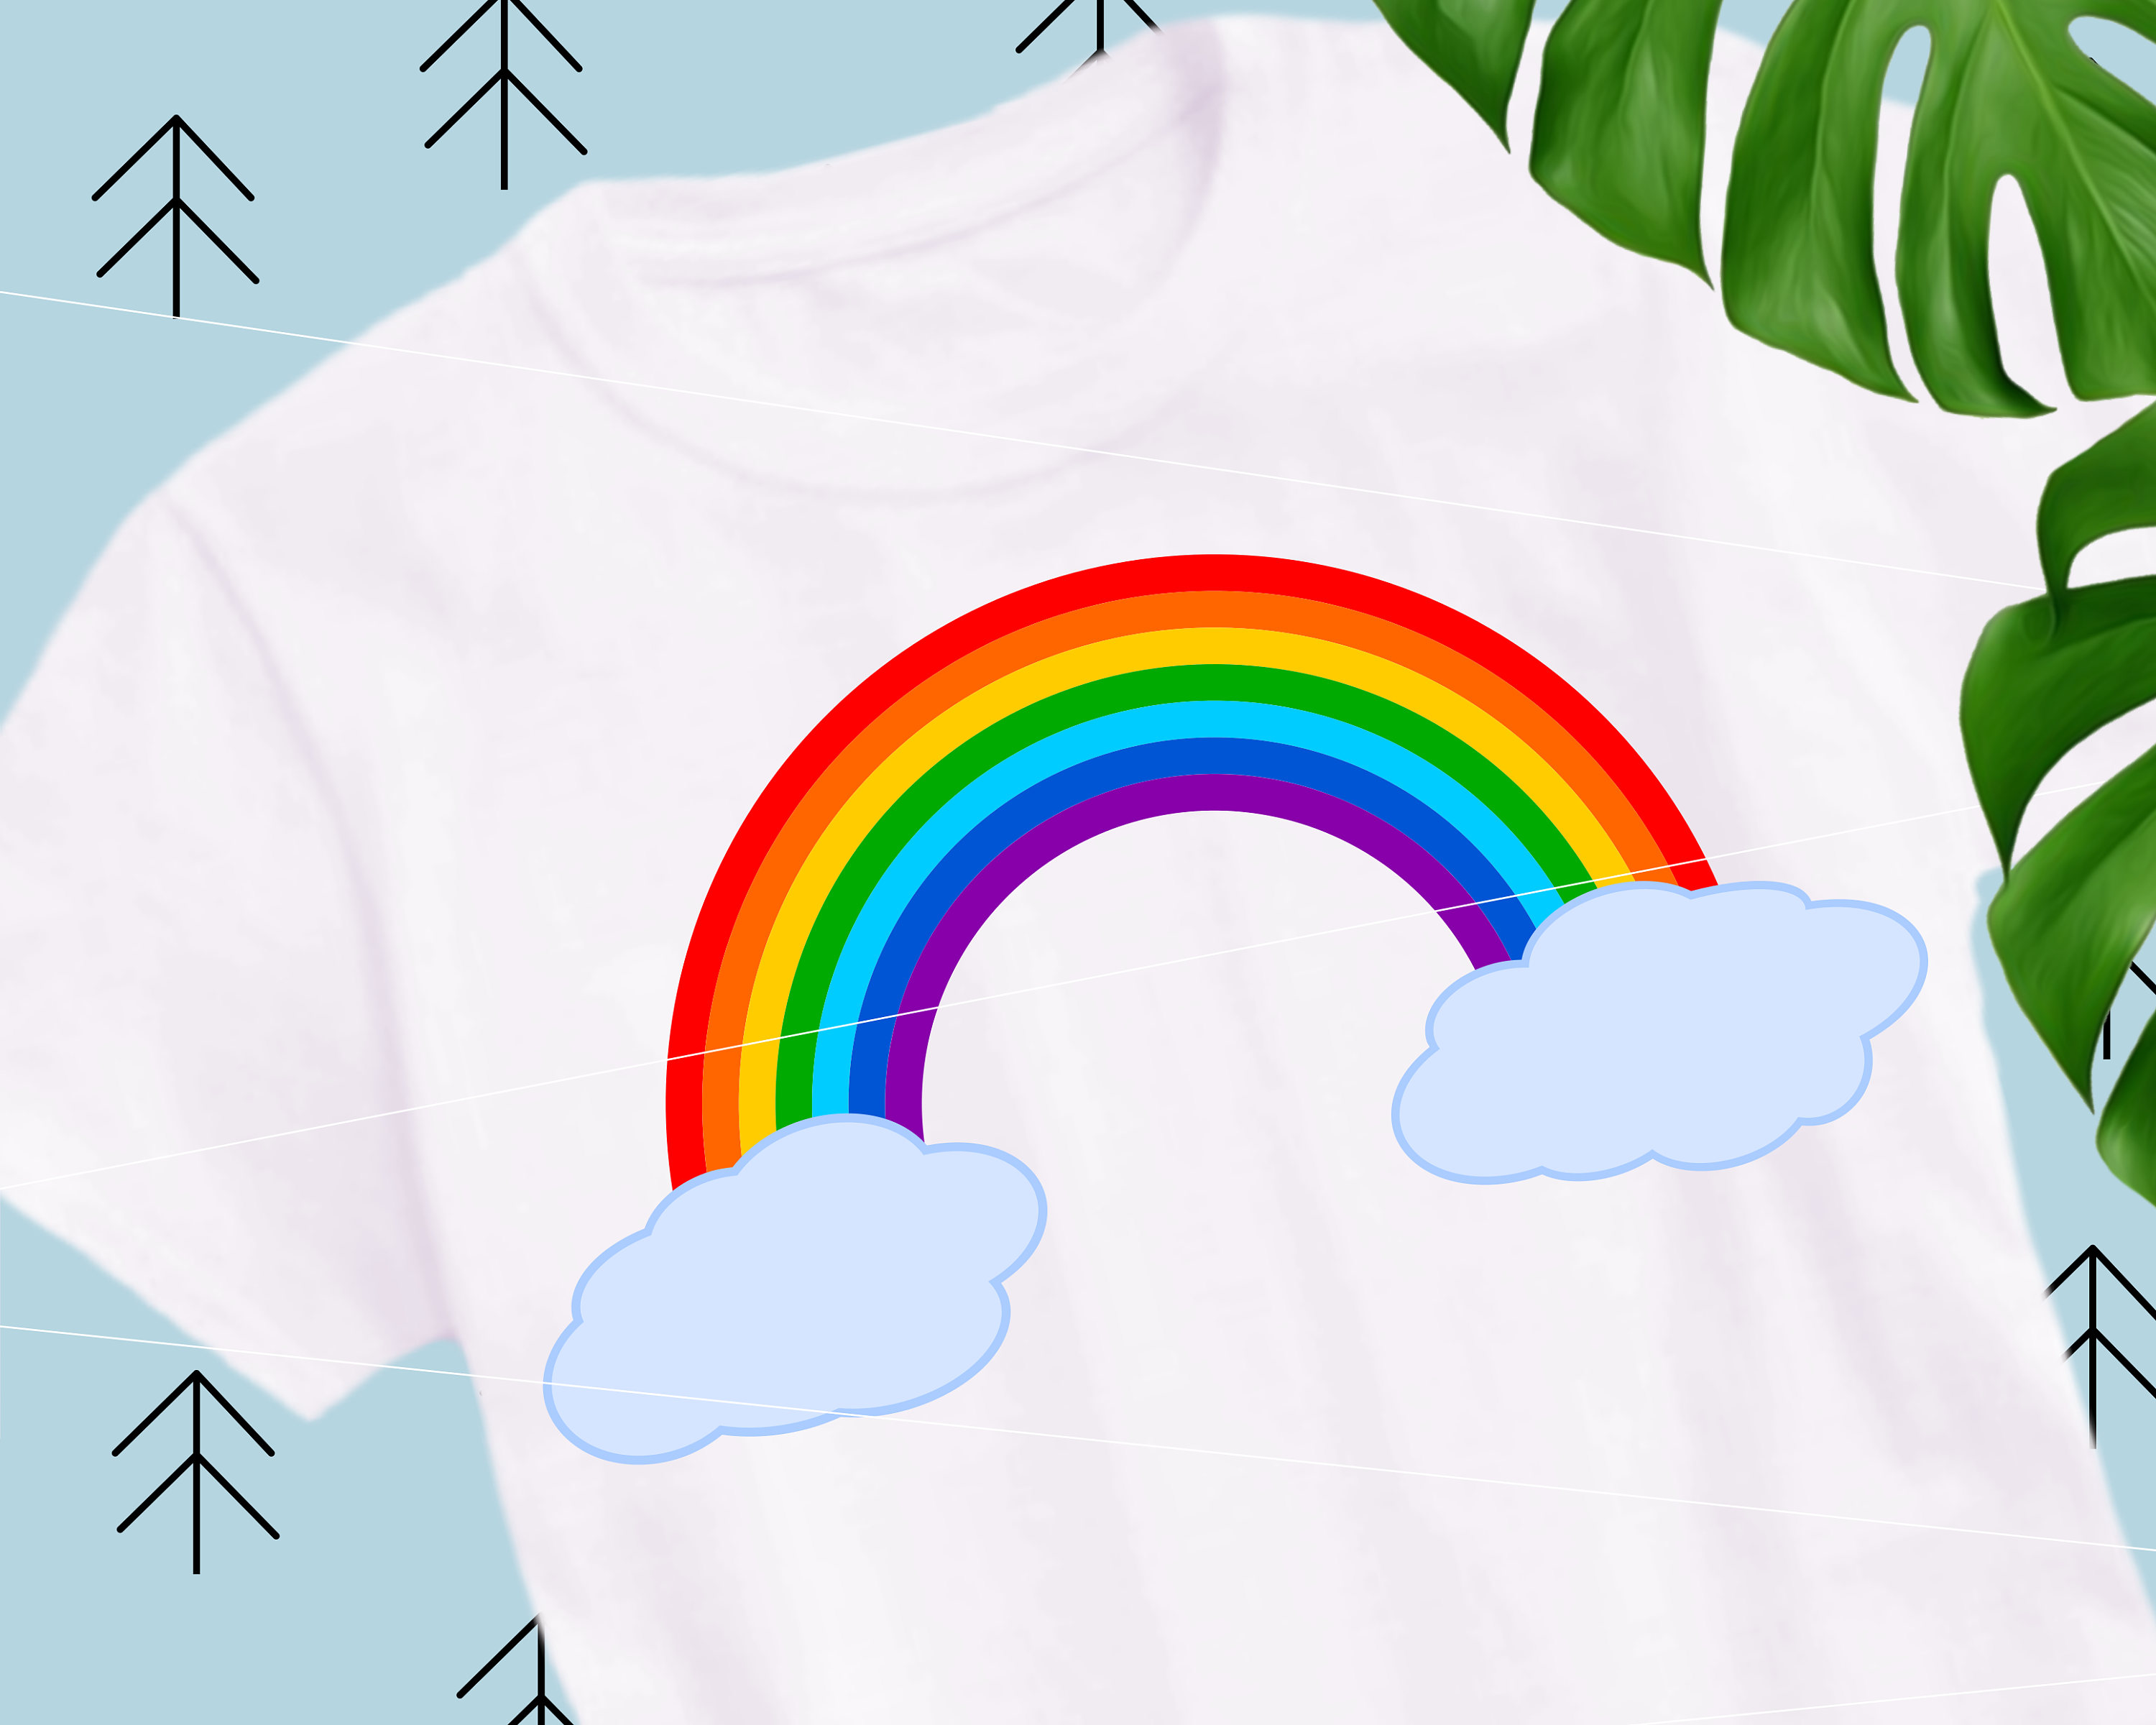 Rainbow clipart baby. Svg cut file